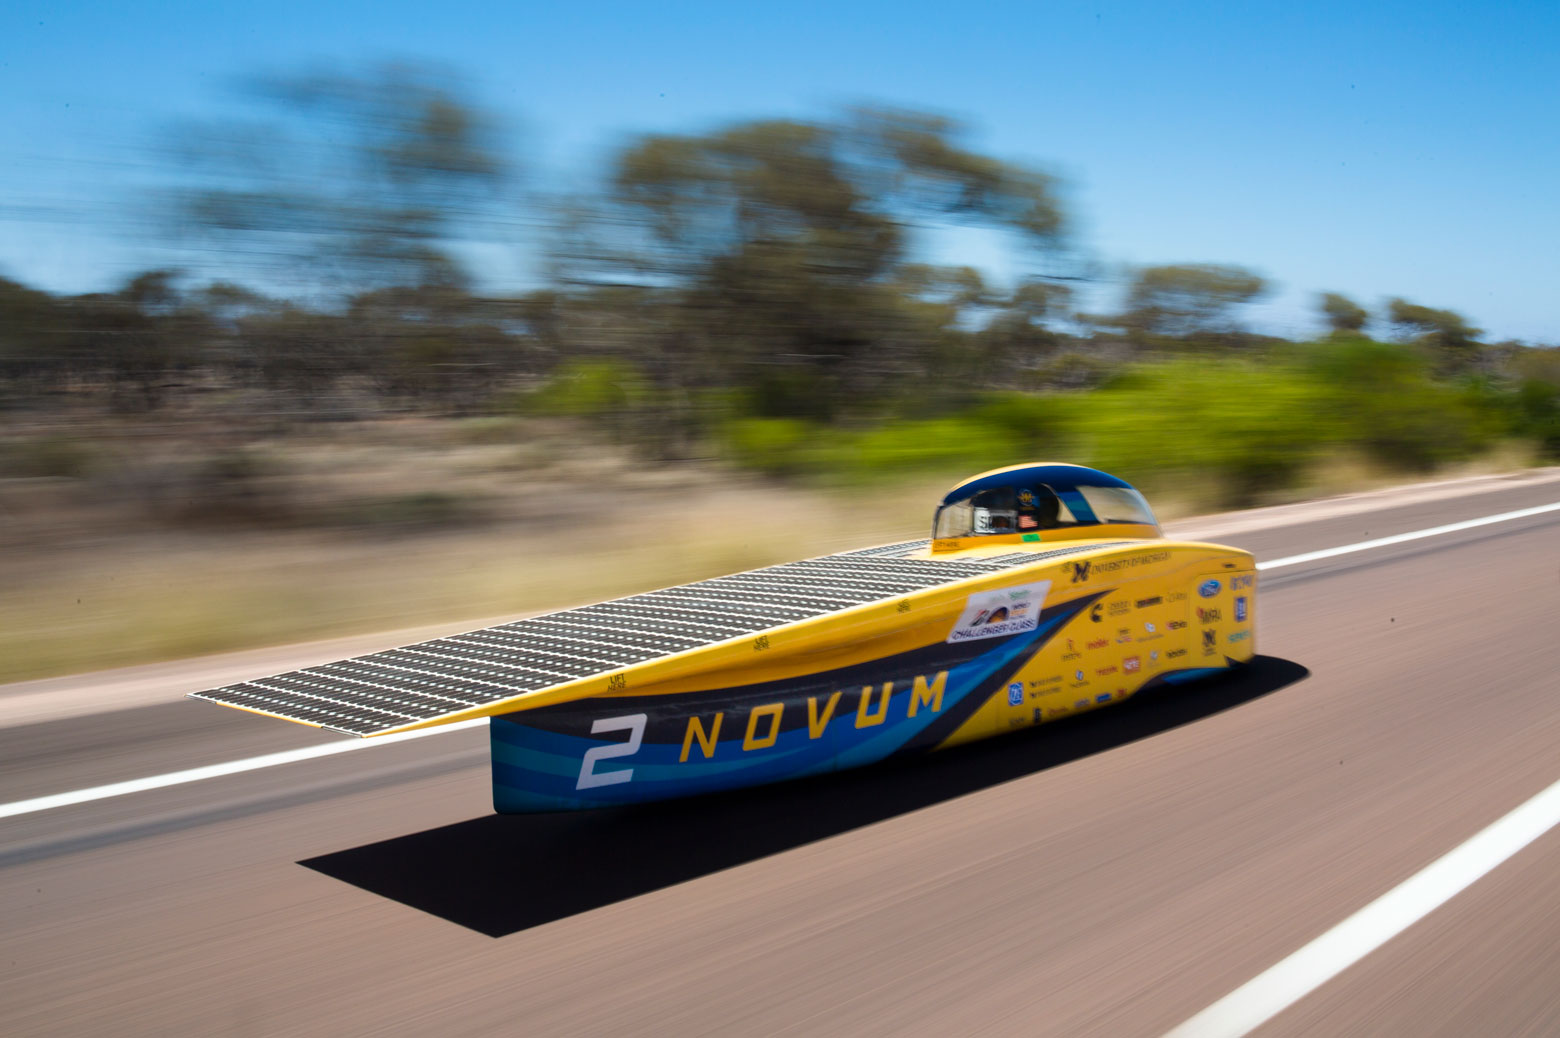 Solar car races down road in Australia